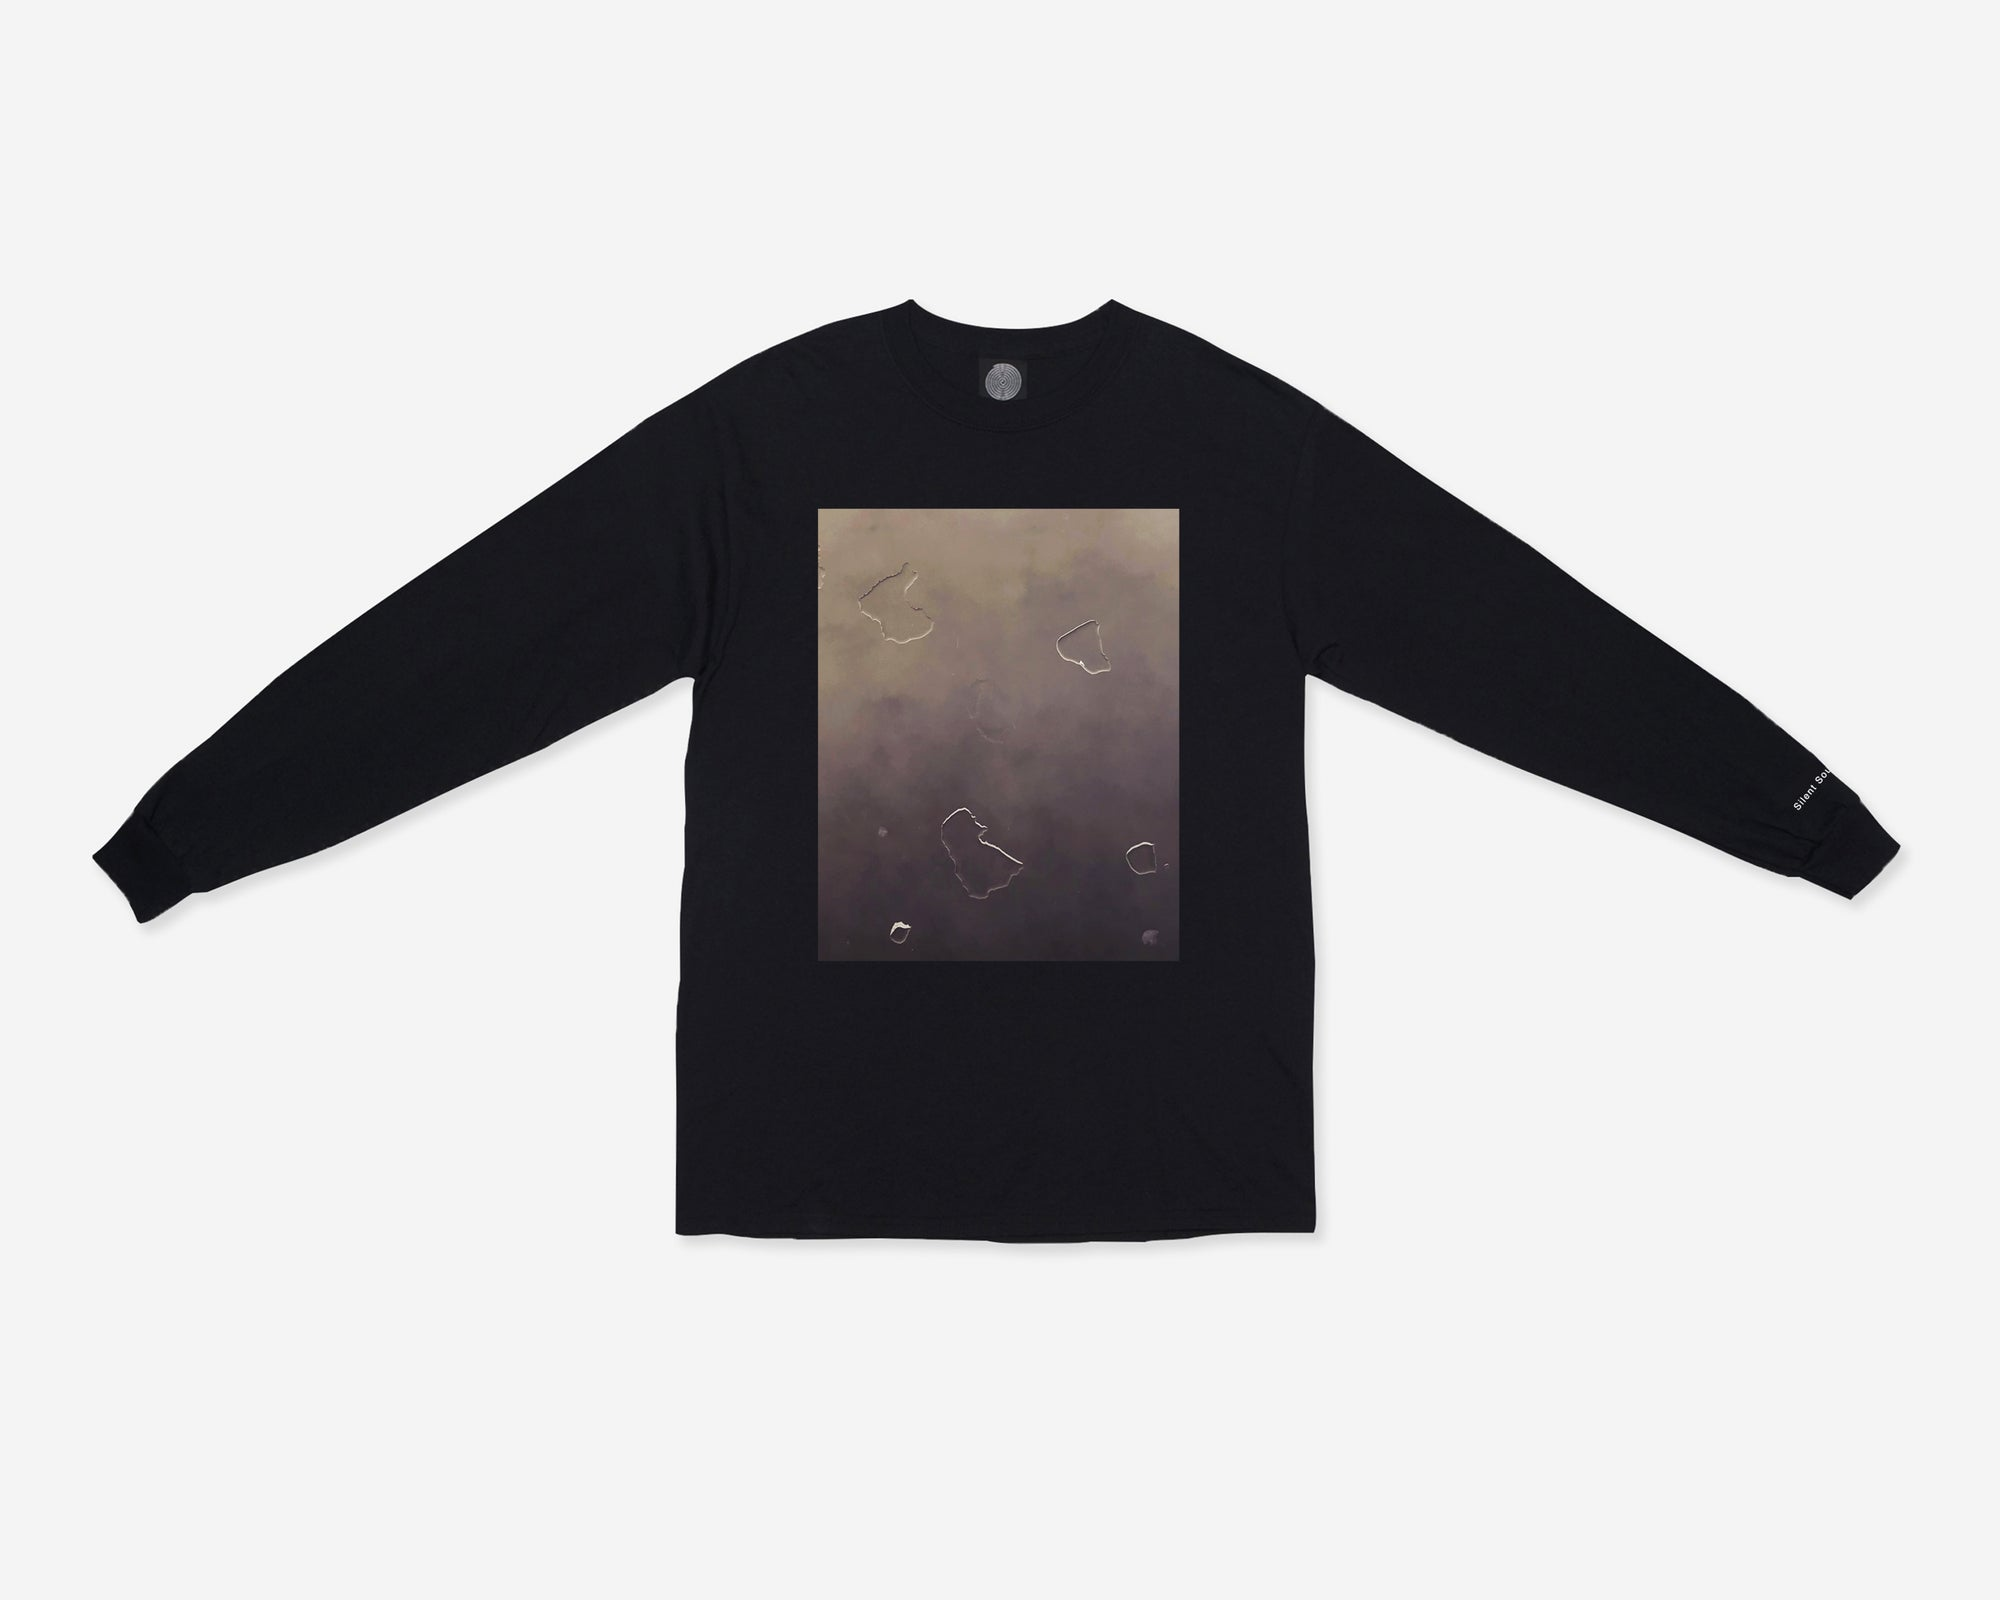 Image of L/S Inverted Rain Tee by Luiso Ponce